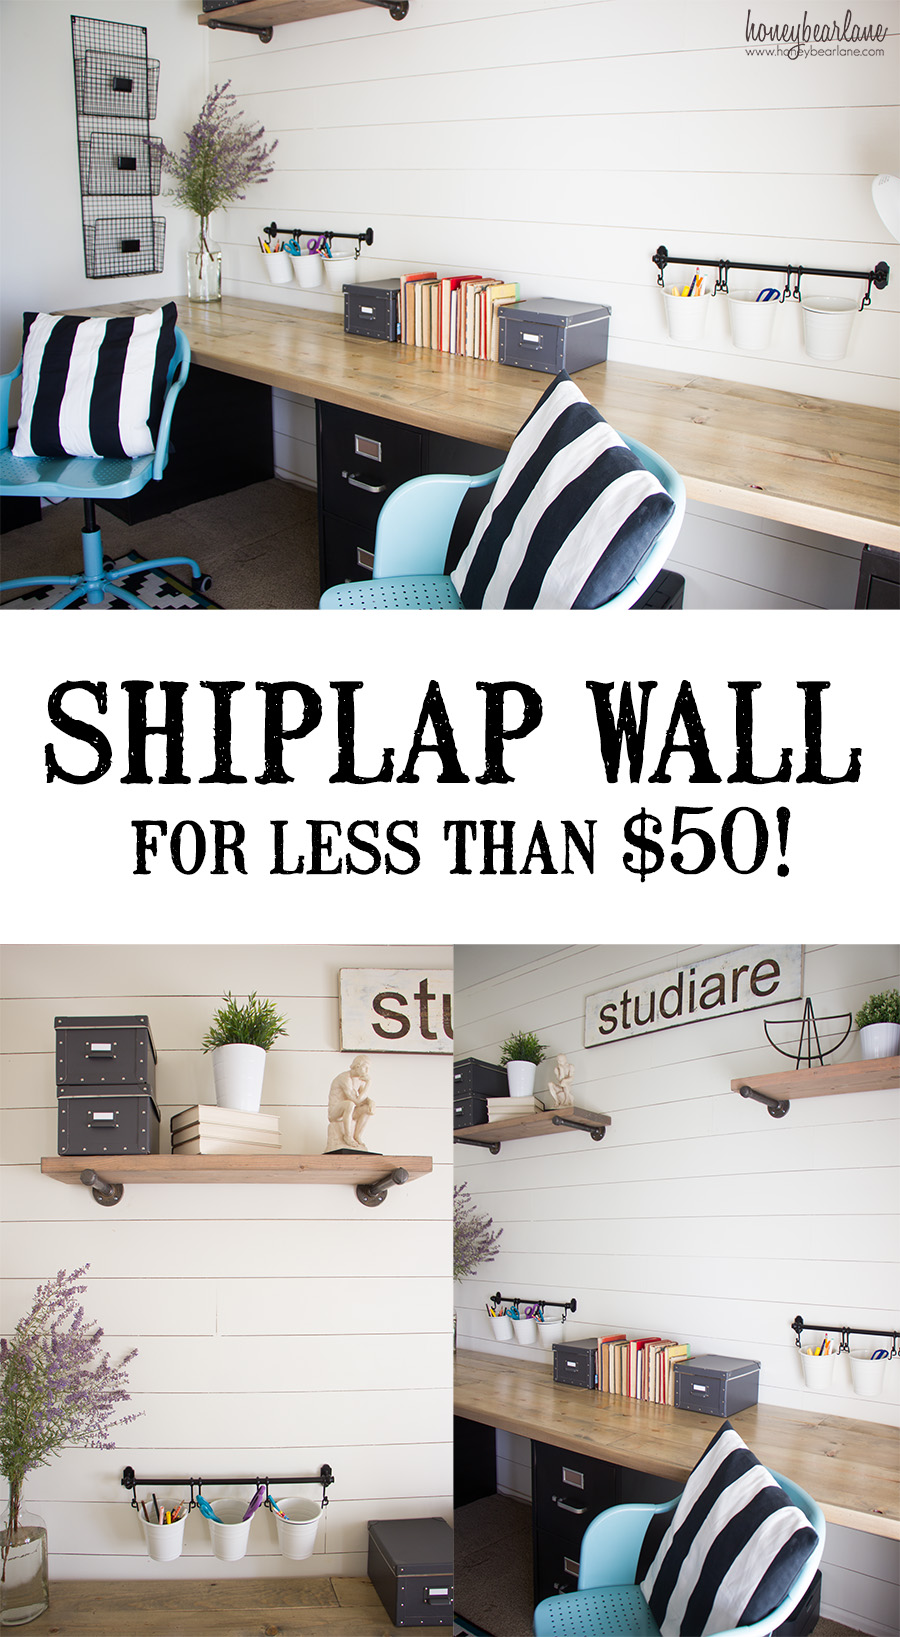 Shiplap Wall for Under $50 - Honeybear Lane